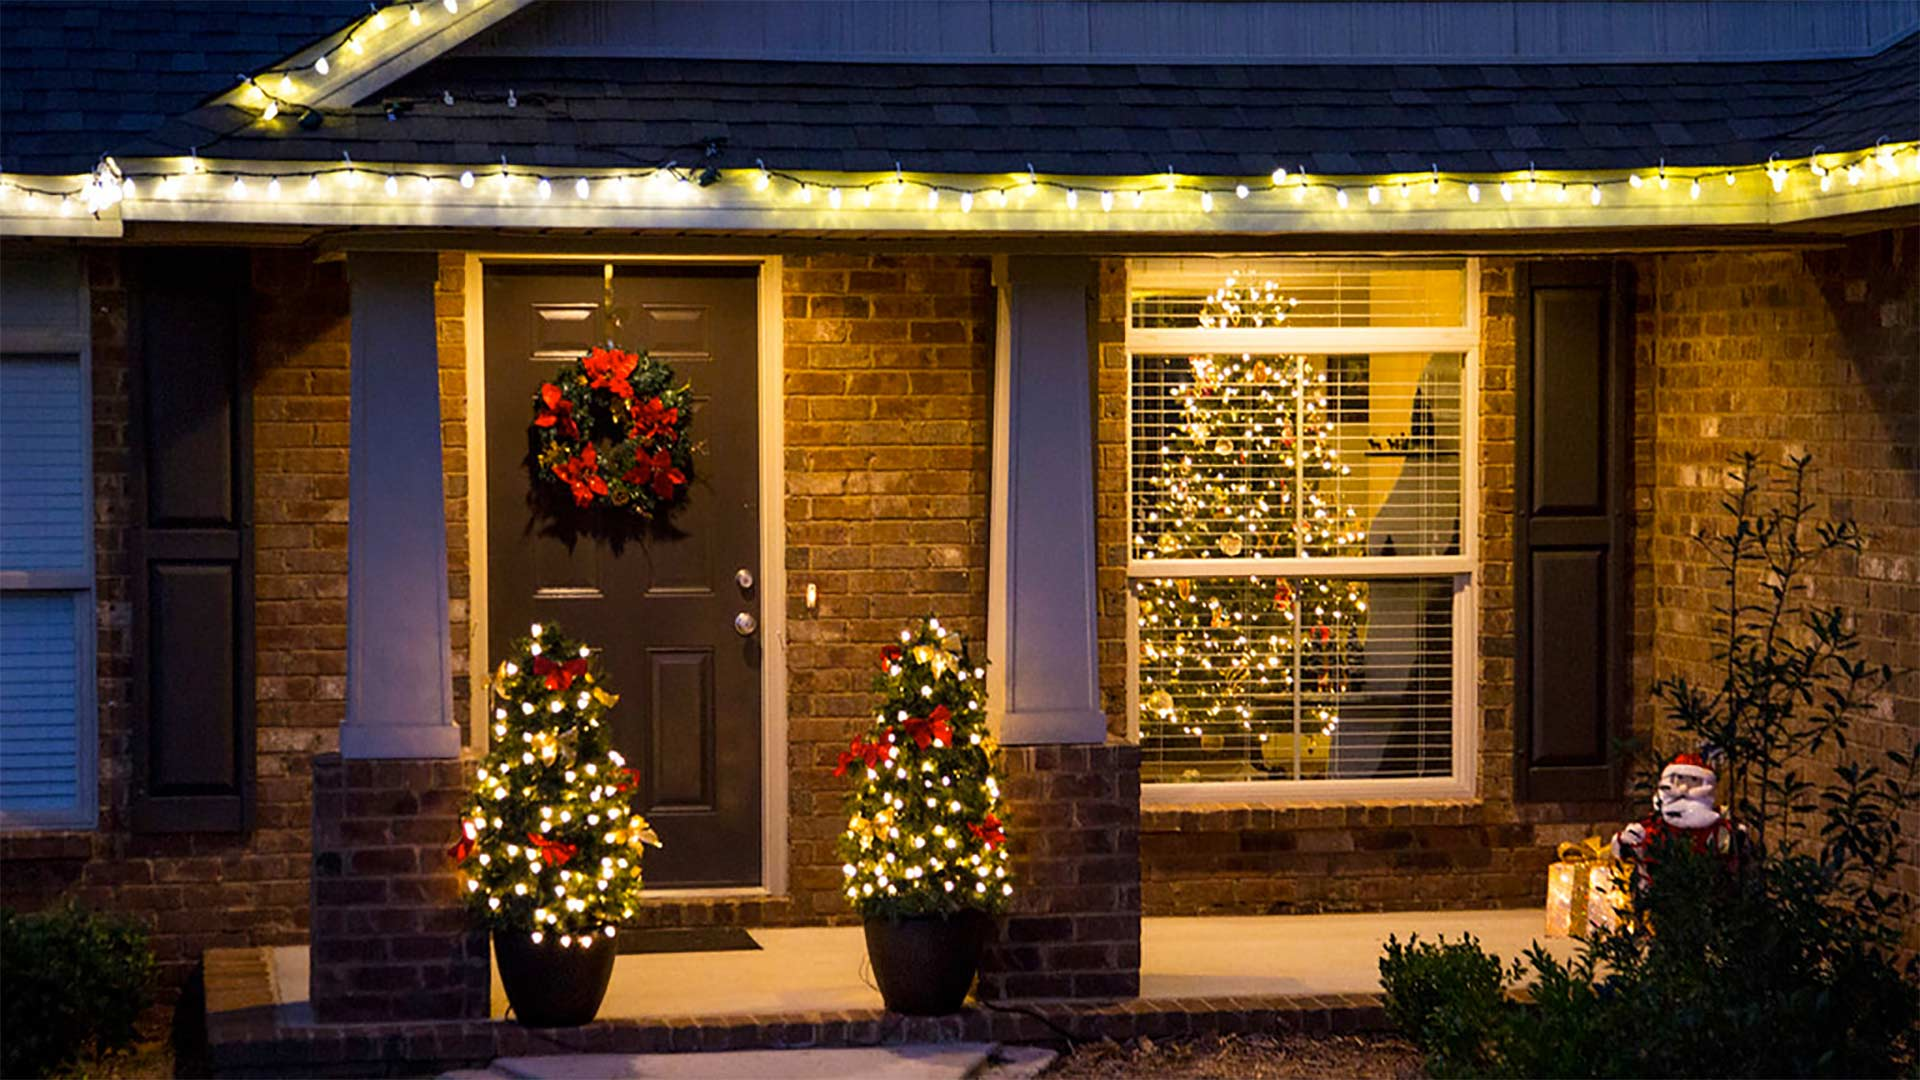 Front porch decked out with Christmas lights at night